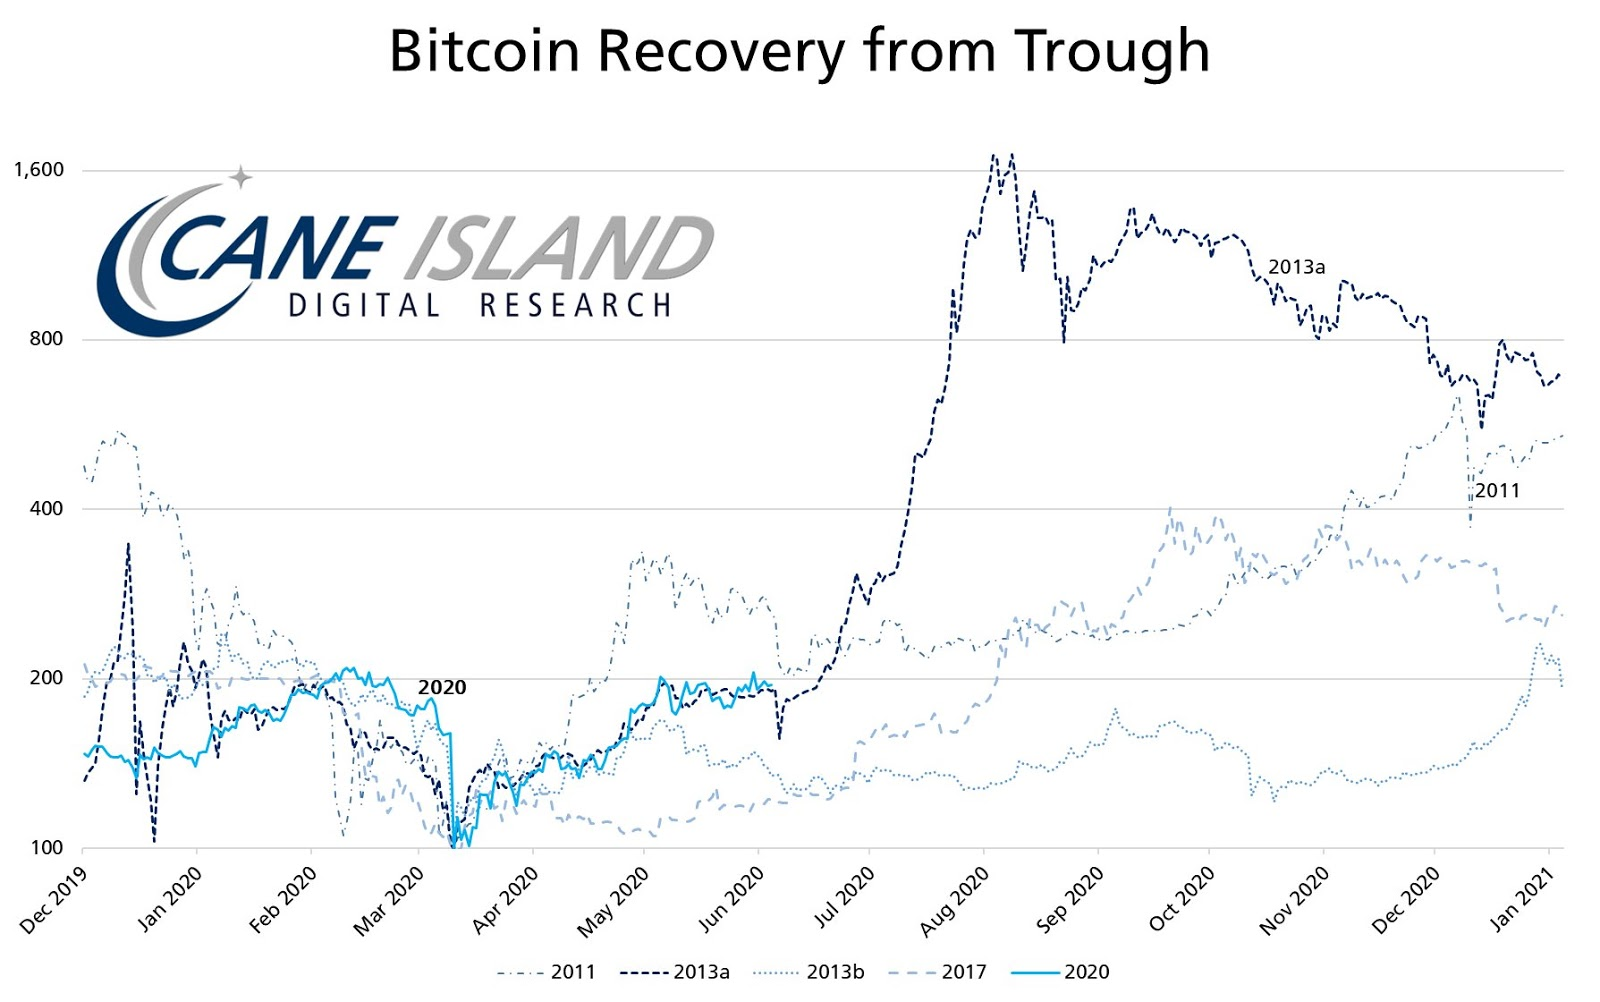 Bitcoin price chart showing various recoveries